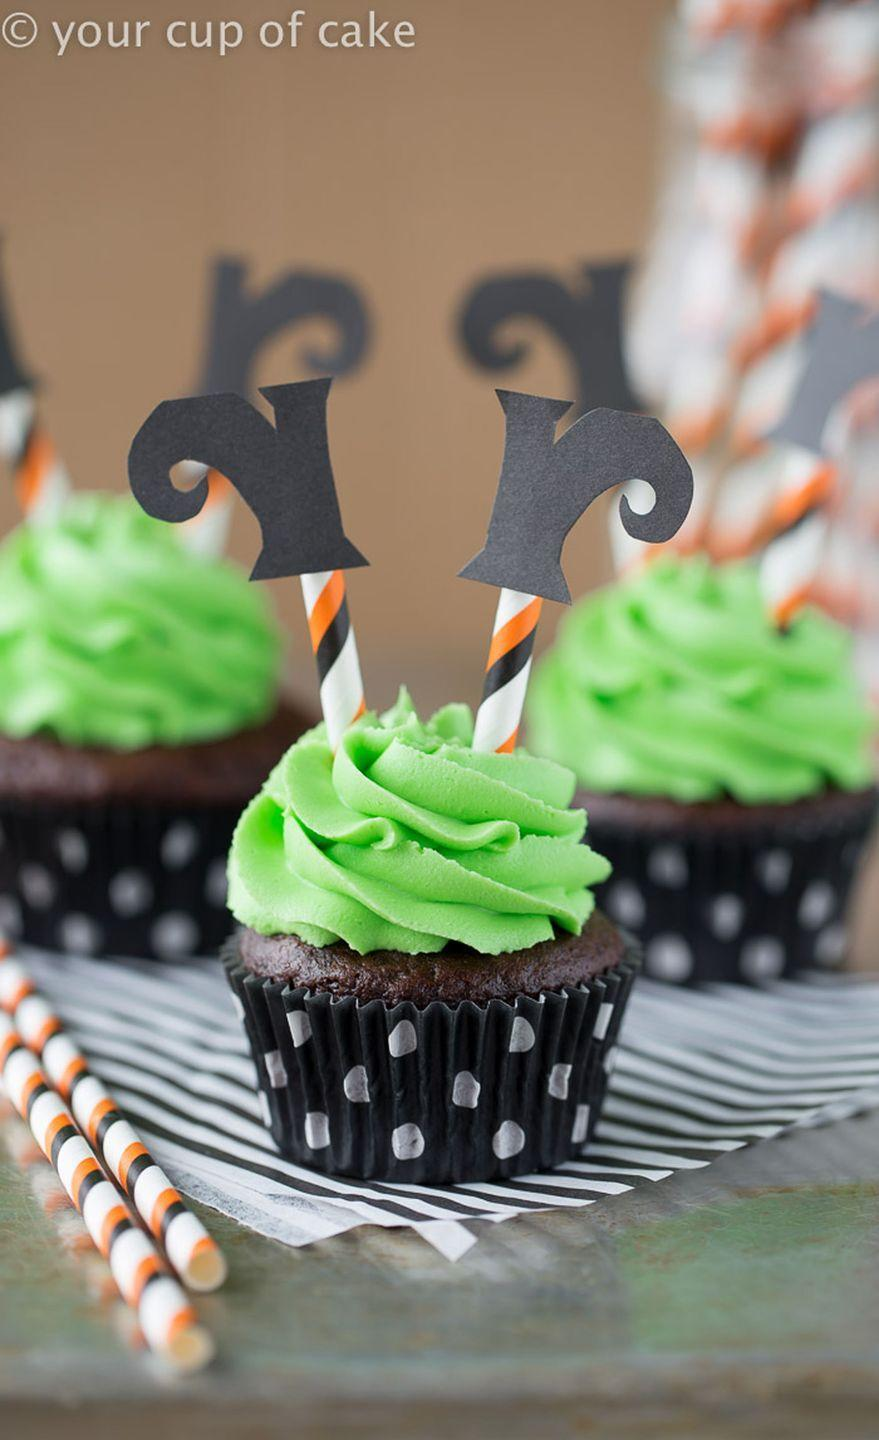 """<p>Turn your taste buds upside-down with these wickedly cute confections.<br></p><p><strong>Get the recipe at <a href=""""http://www.yourcupofcake.com/2015/10/wicked-witch-cupcakes.html"""" rel=""""nofollow noopener"""" target=""""_blank"""" data-ylk=""""slk:Your Cup of Cake"""" class=""""link rapid-noclick-resp"""">Your Cup of Cake</a>.</strong></p><p><a class=""""link rapid-noclick-resp"""" href=""""https://www.amazon.com/Hamilton-Beach-62682RZ-Mixer-Snap/dp/B001CH0ZLE?tag=syn-yahoo-20&ascsubtag=%5Bartid%7C10050.g.1366%5Bsrc%7Cyahoo-us"""" rel=""""nofollow noopener"""" target=""""_blank"""" data-ylk=""""slk:SHOP HAND MIXERS"""">SHOP HAND MIXERS</a></p>"""